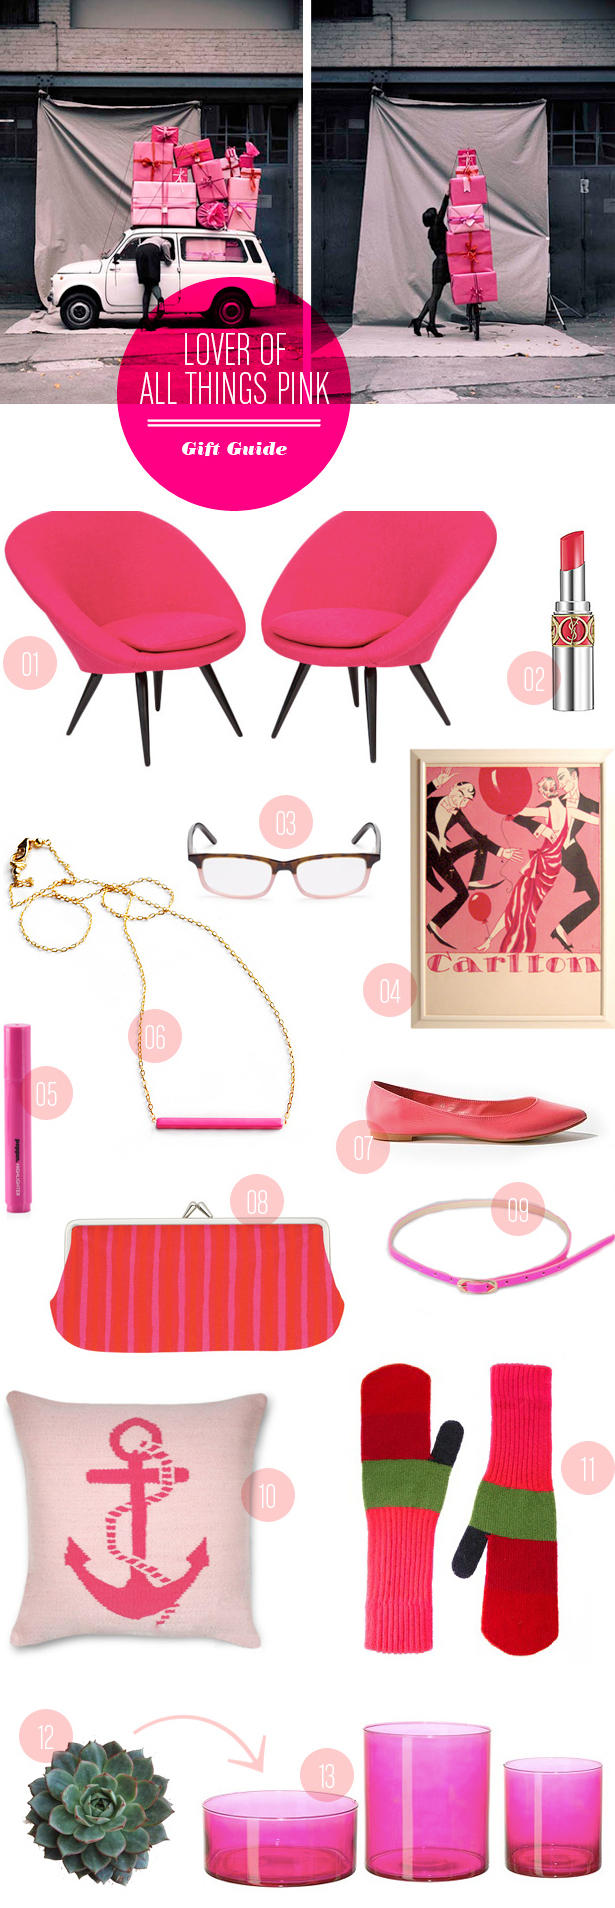 Wedding Blog Pink & Punchy: Gift Guide from MStetson Design